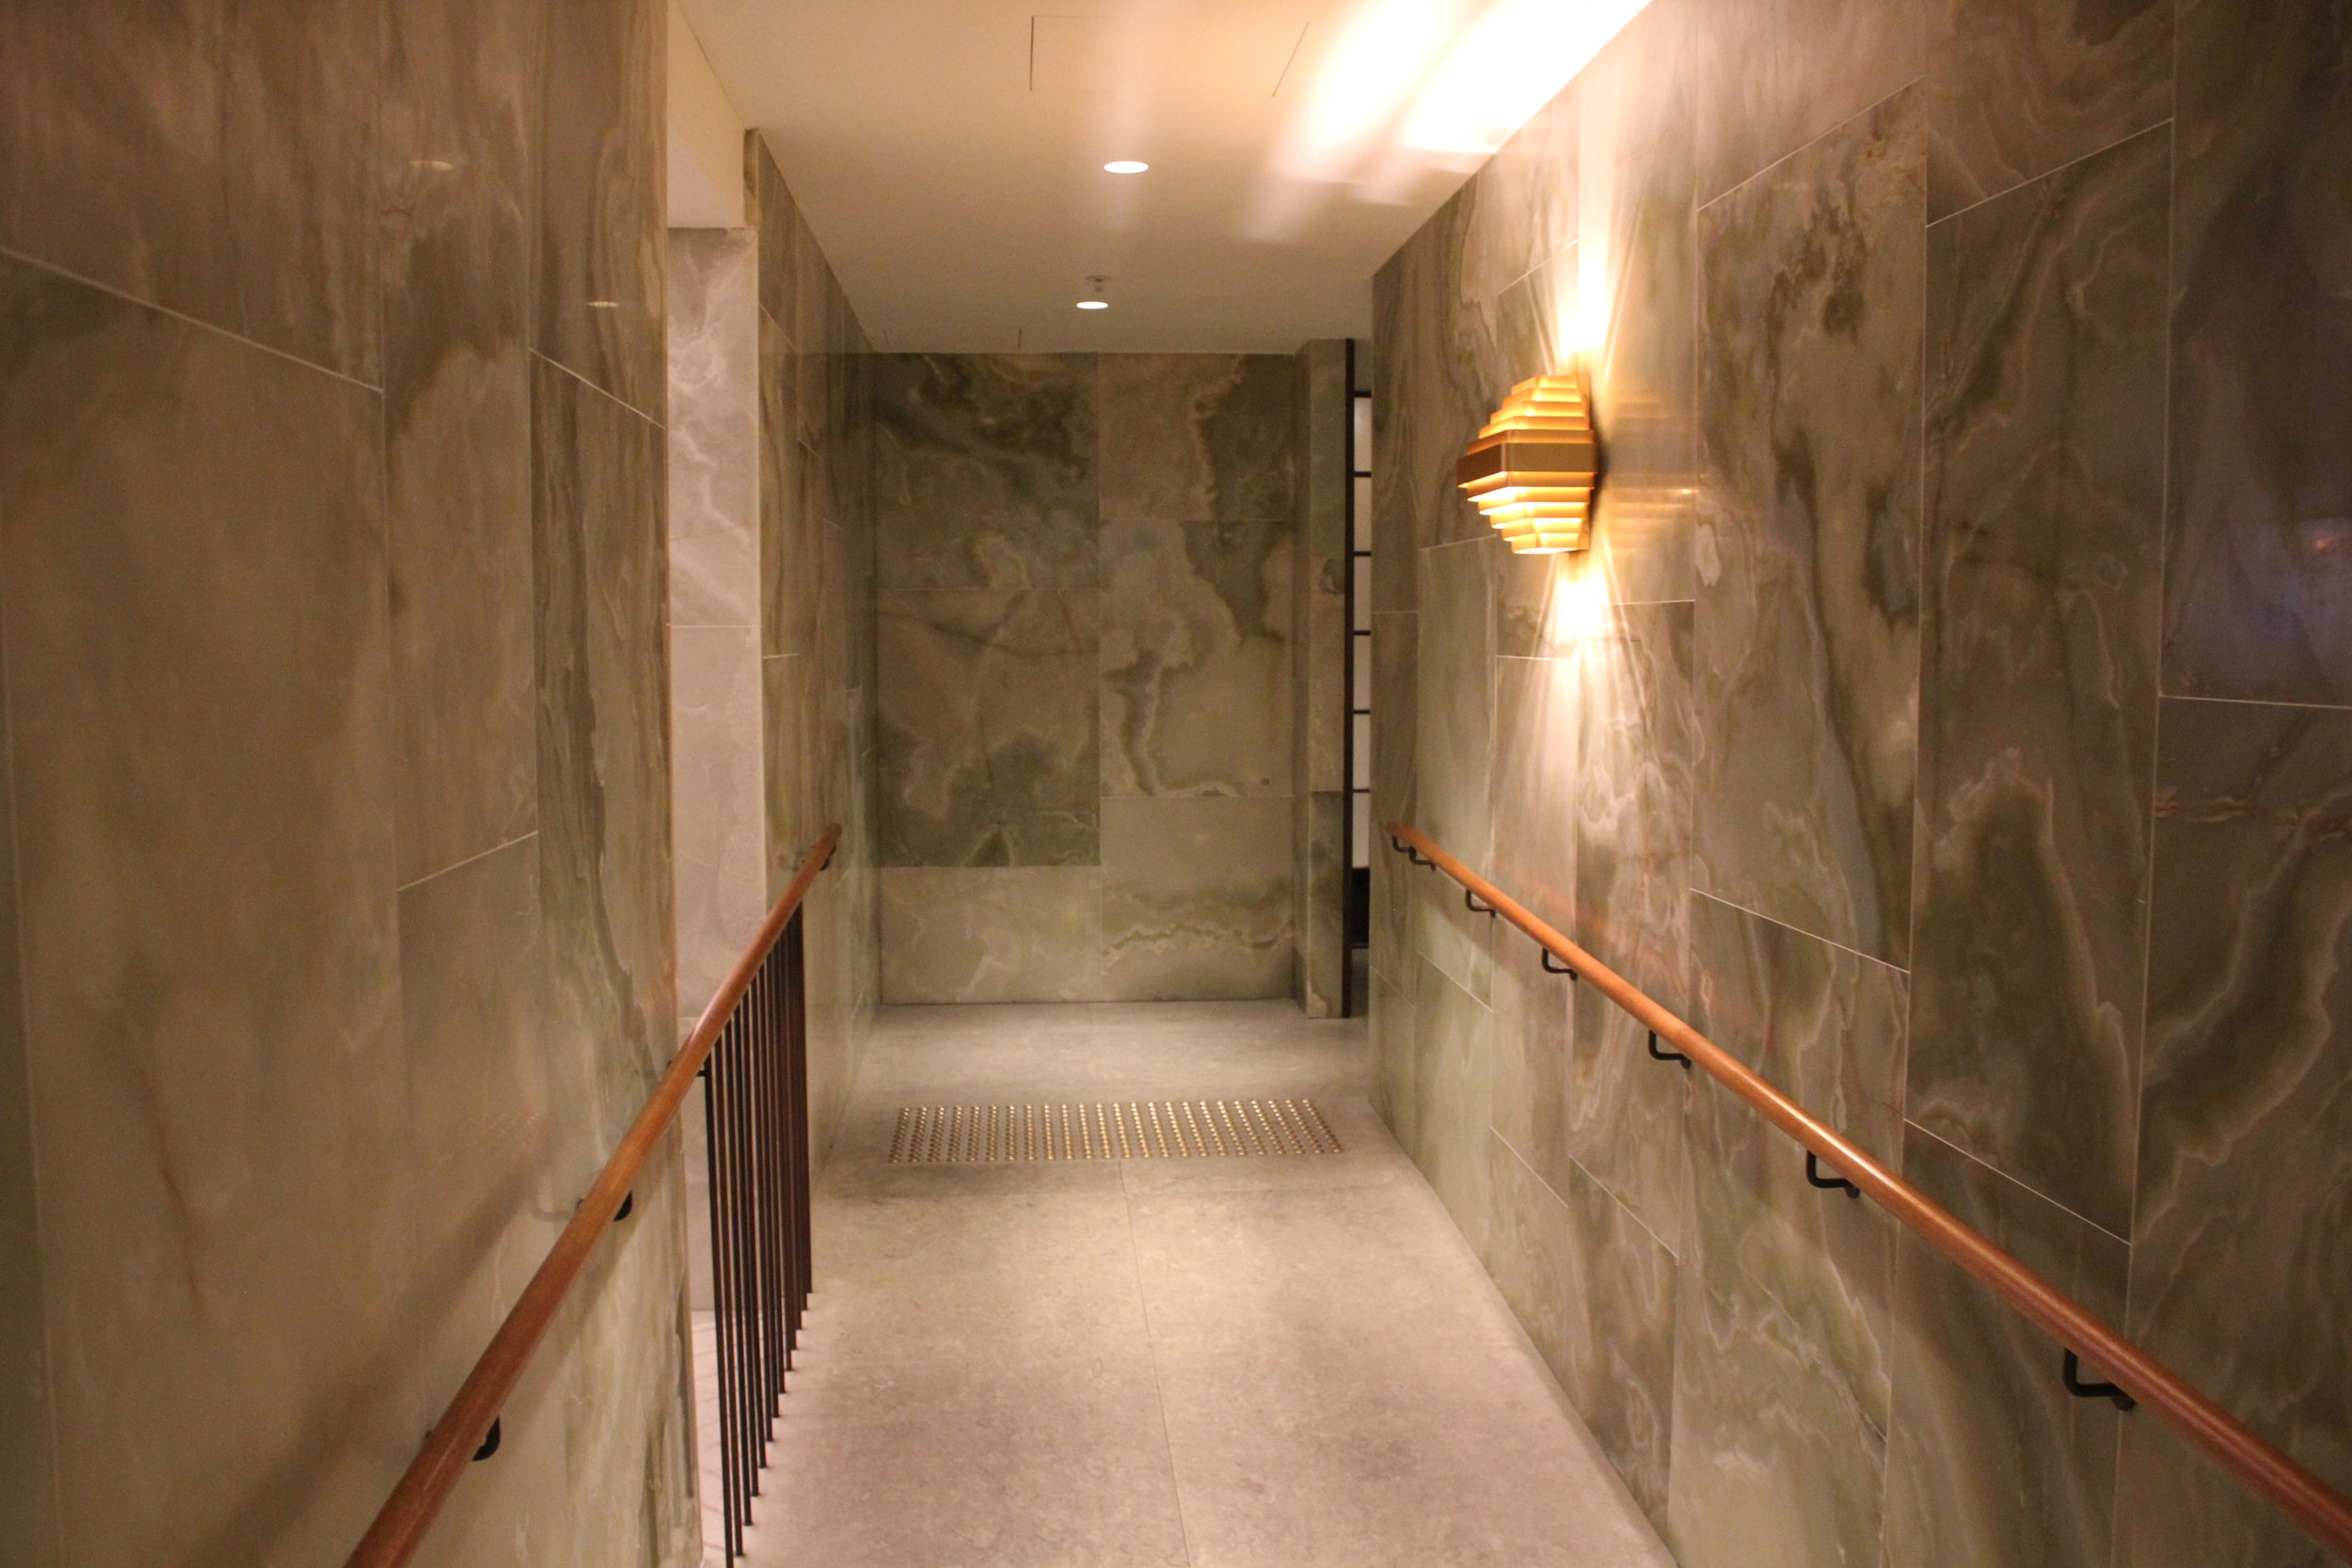 The Pier First Class Lounge by Cathay Pacific – Corridor to restrooms